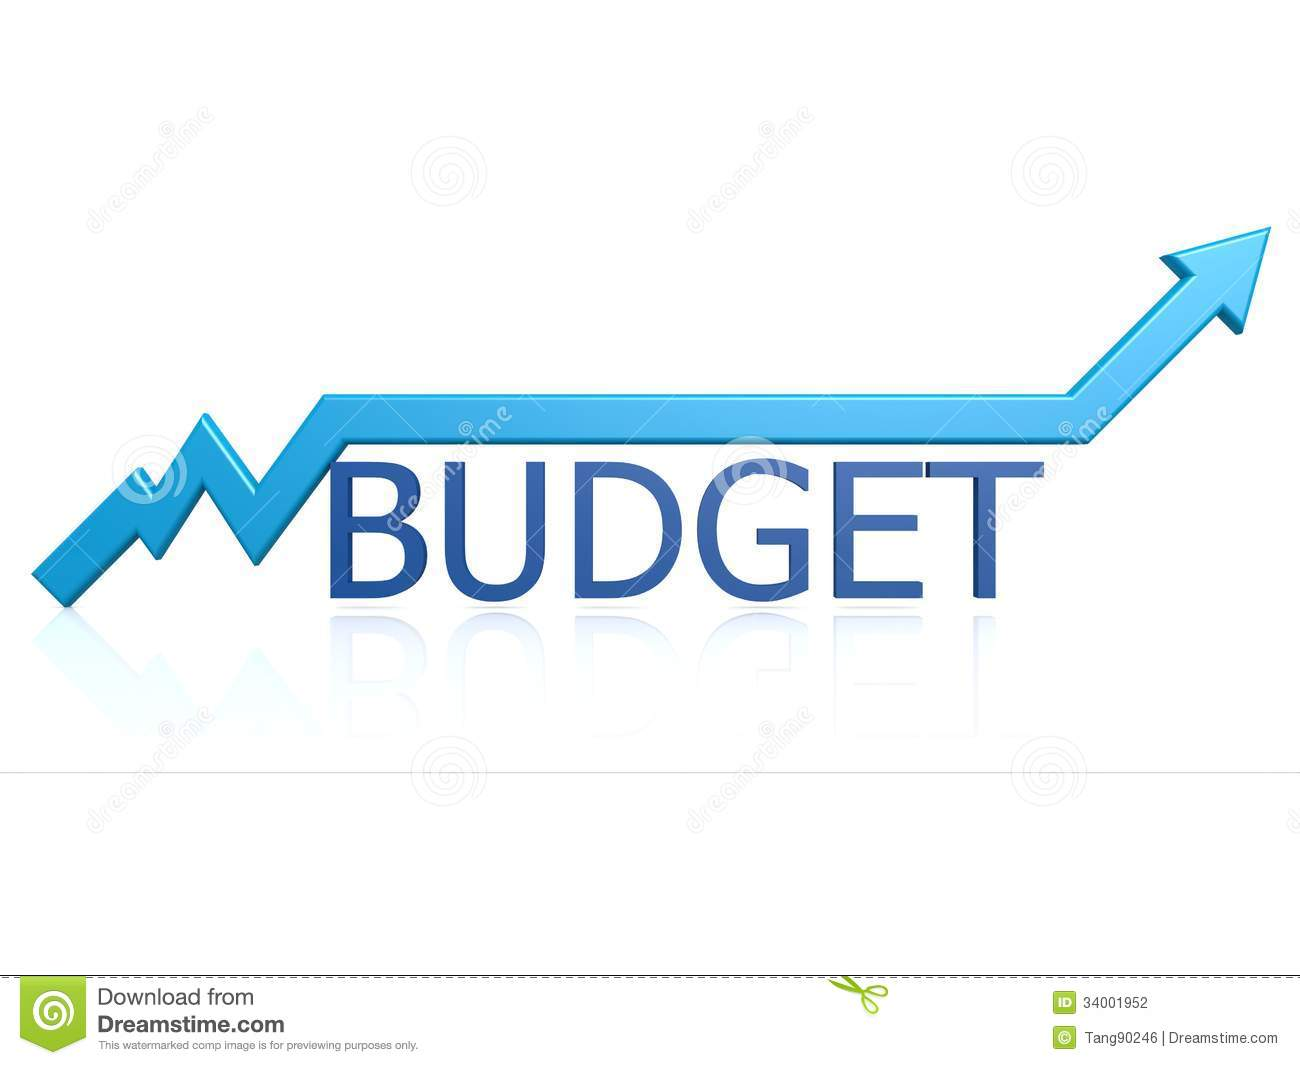 allocating and monitoring budgets - how finance works essay Budgeting is the process of allocating finite resources to the prioritized needs of  an  the link between financial planning and budget preparation gives the   periodic monitoring of balances is provided through budgetary integration with  the.